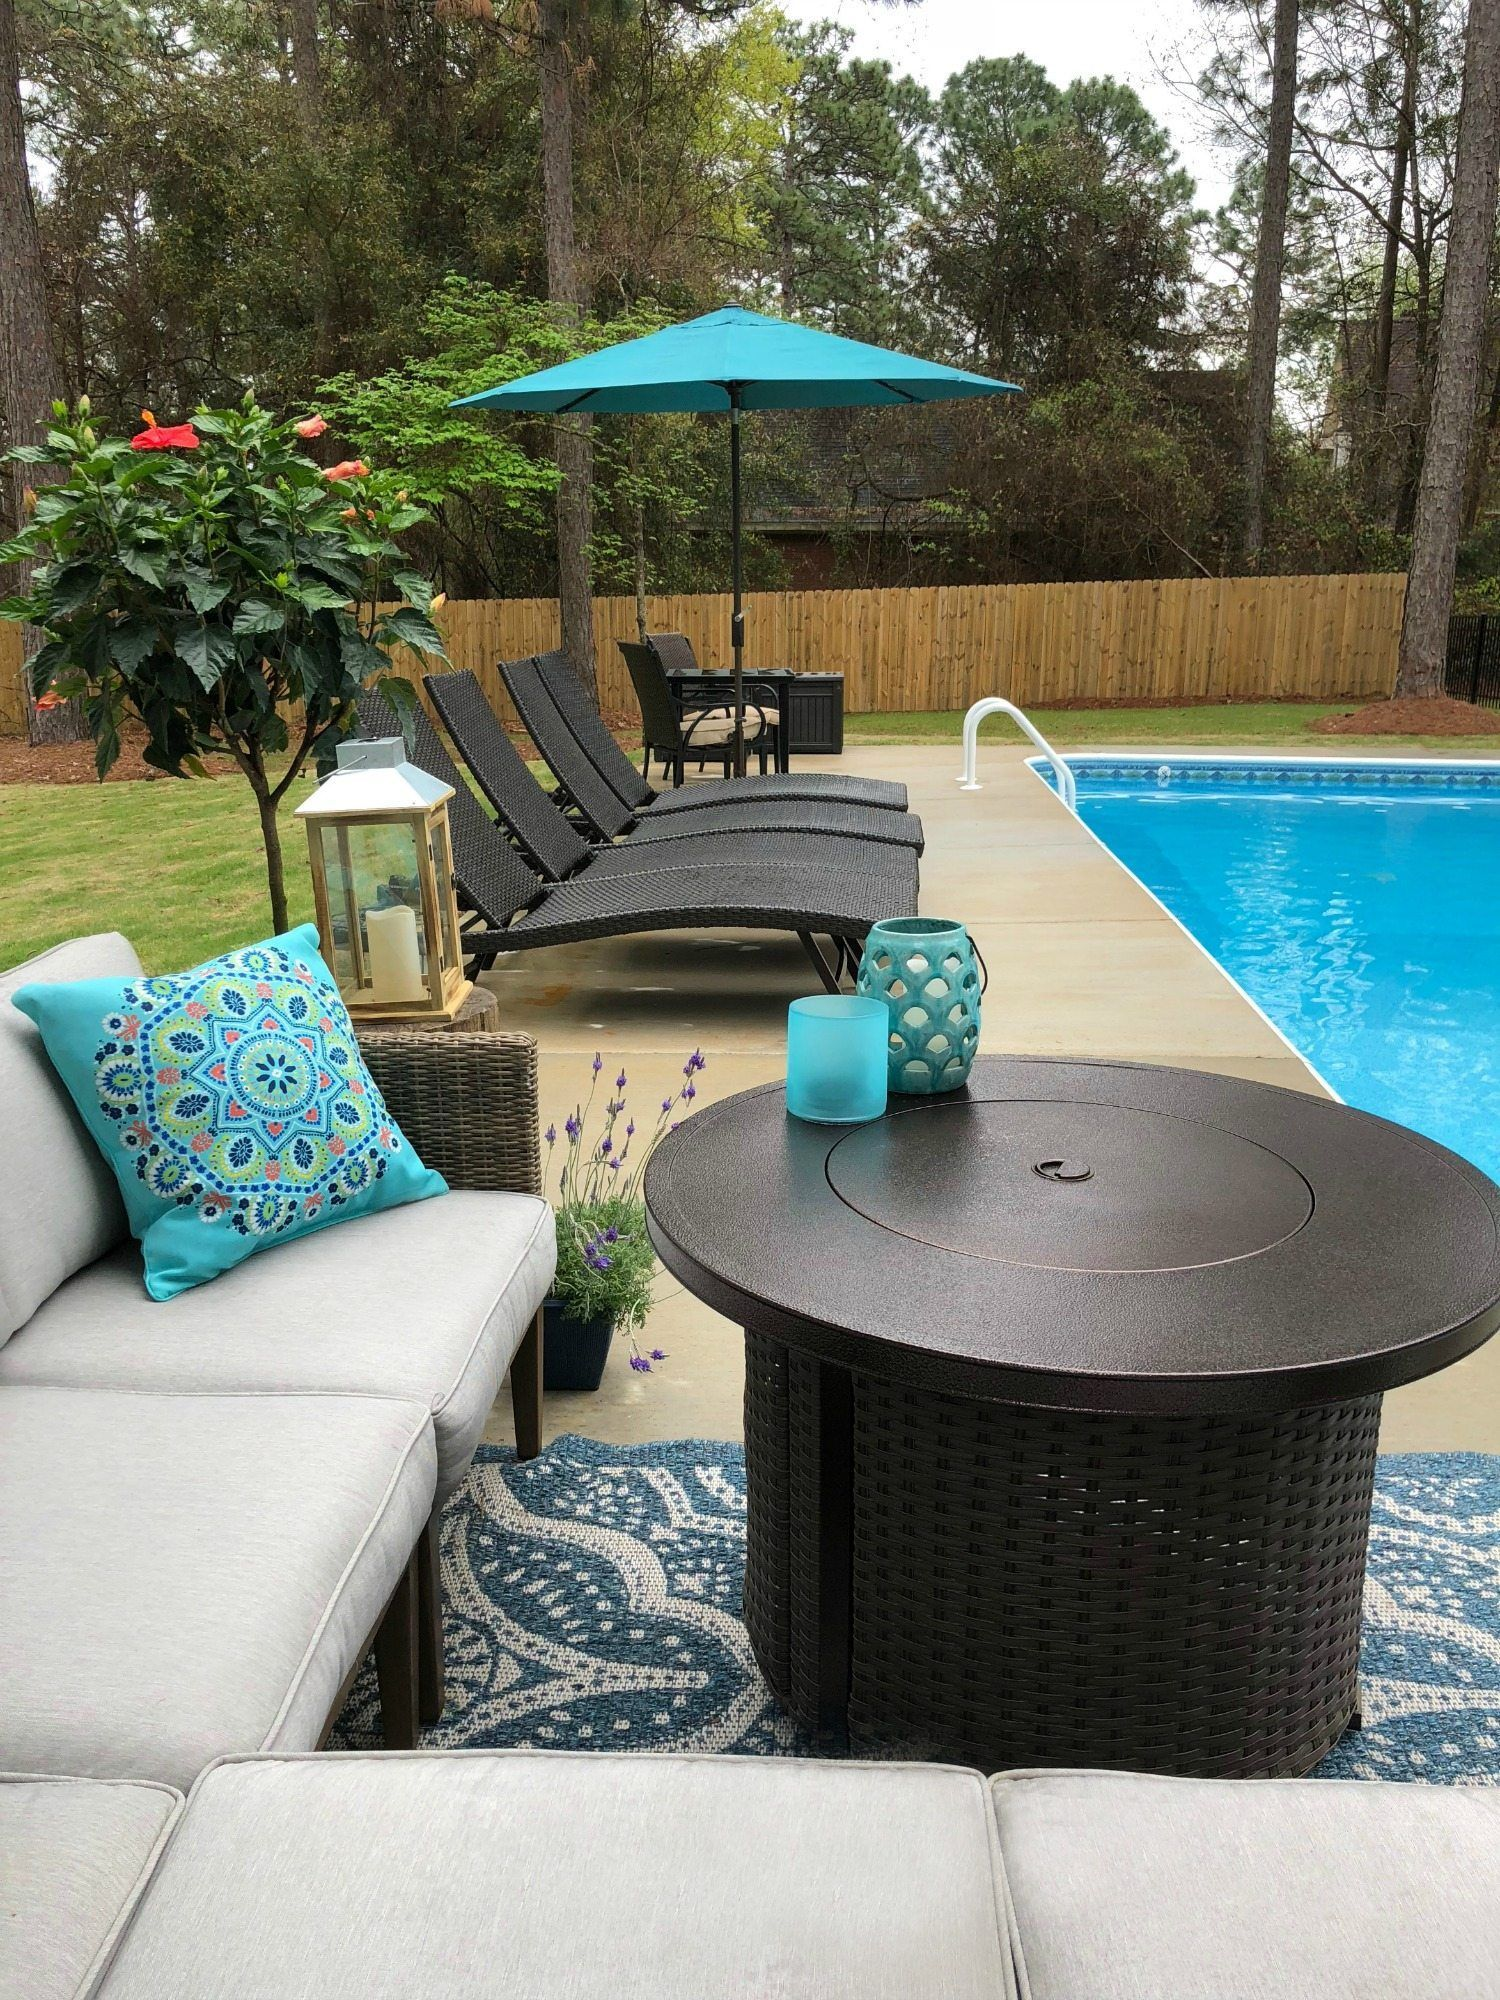 Fire Pit And Seating Poolside Ideas That Are Affordable Pool Patio Furniture Poolside Decor Pool Decor